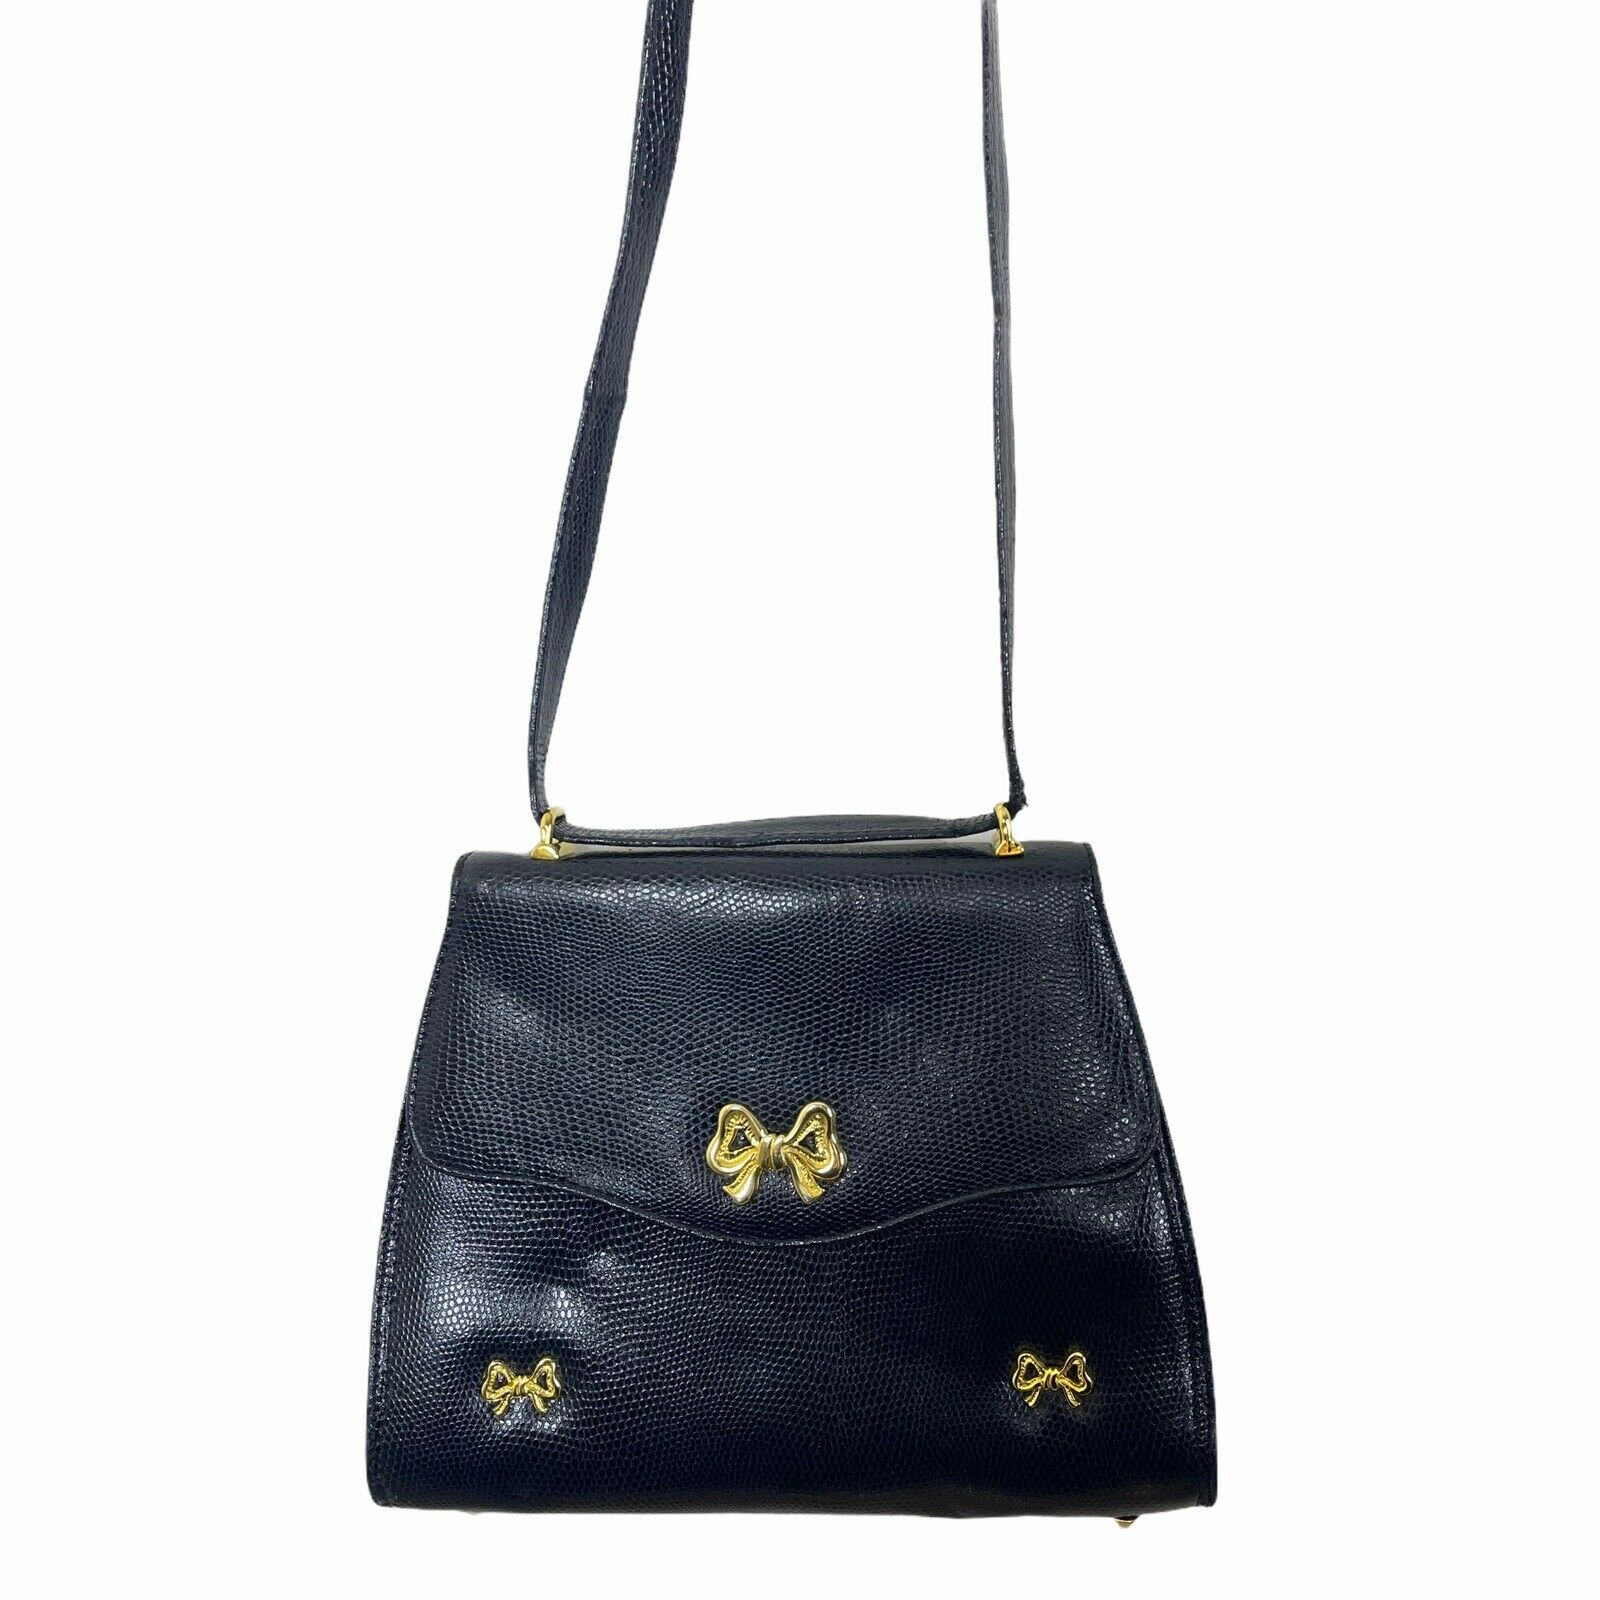 ARNOLD SCAASI NAVY LIZARD LEATHER WITH BOWS WOMEN… - image 10